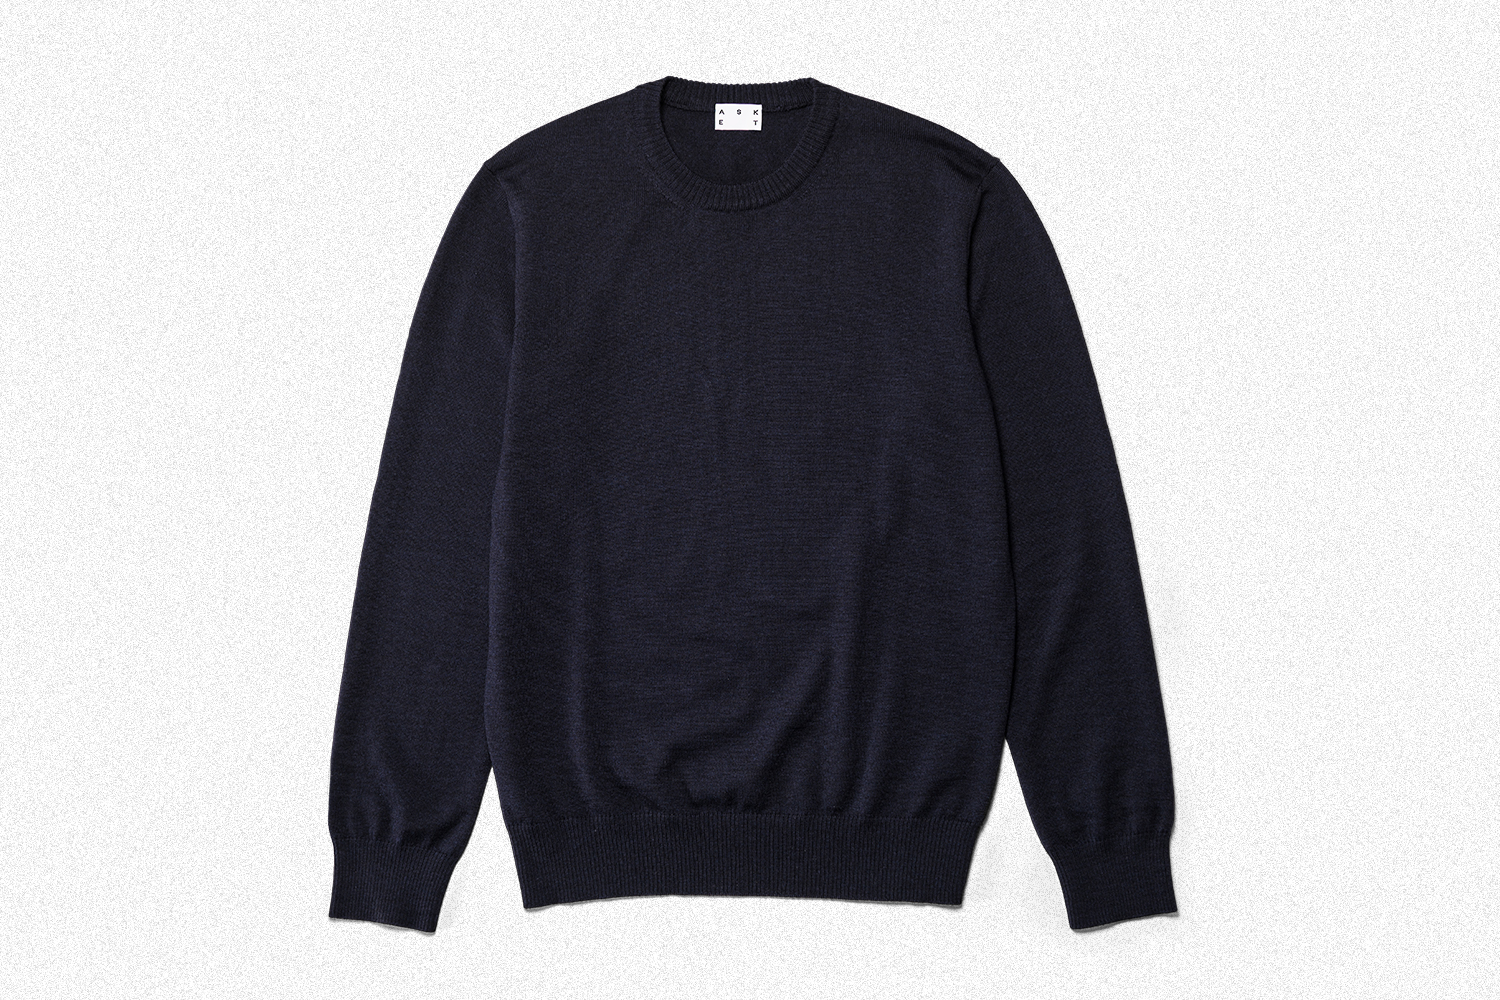 The Merino Sweater in navy blue from Swedish brand Asket